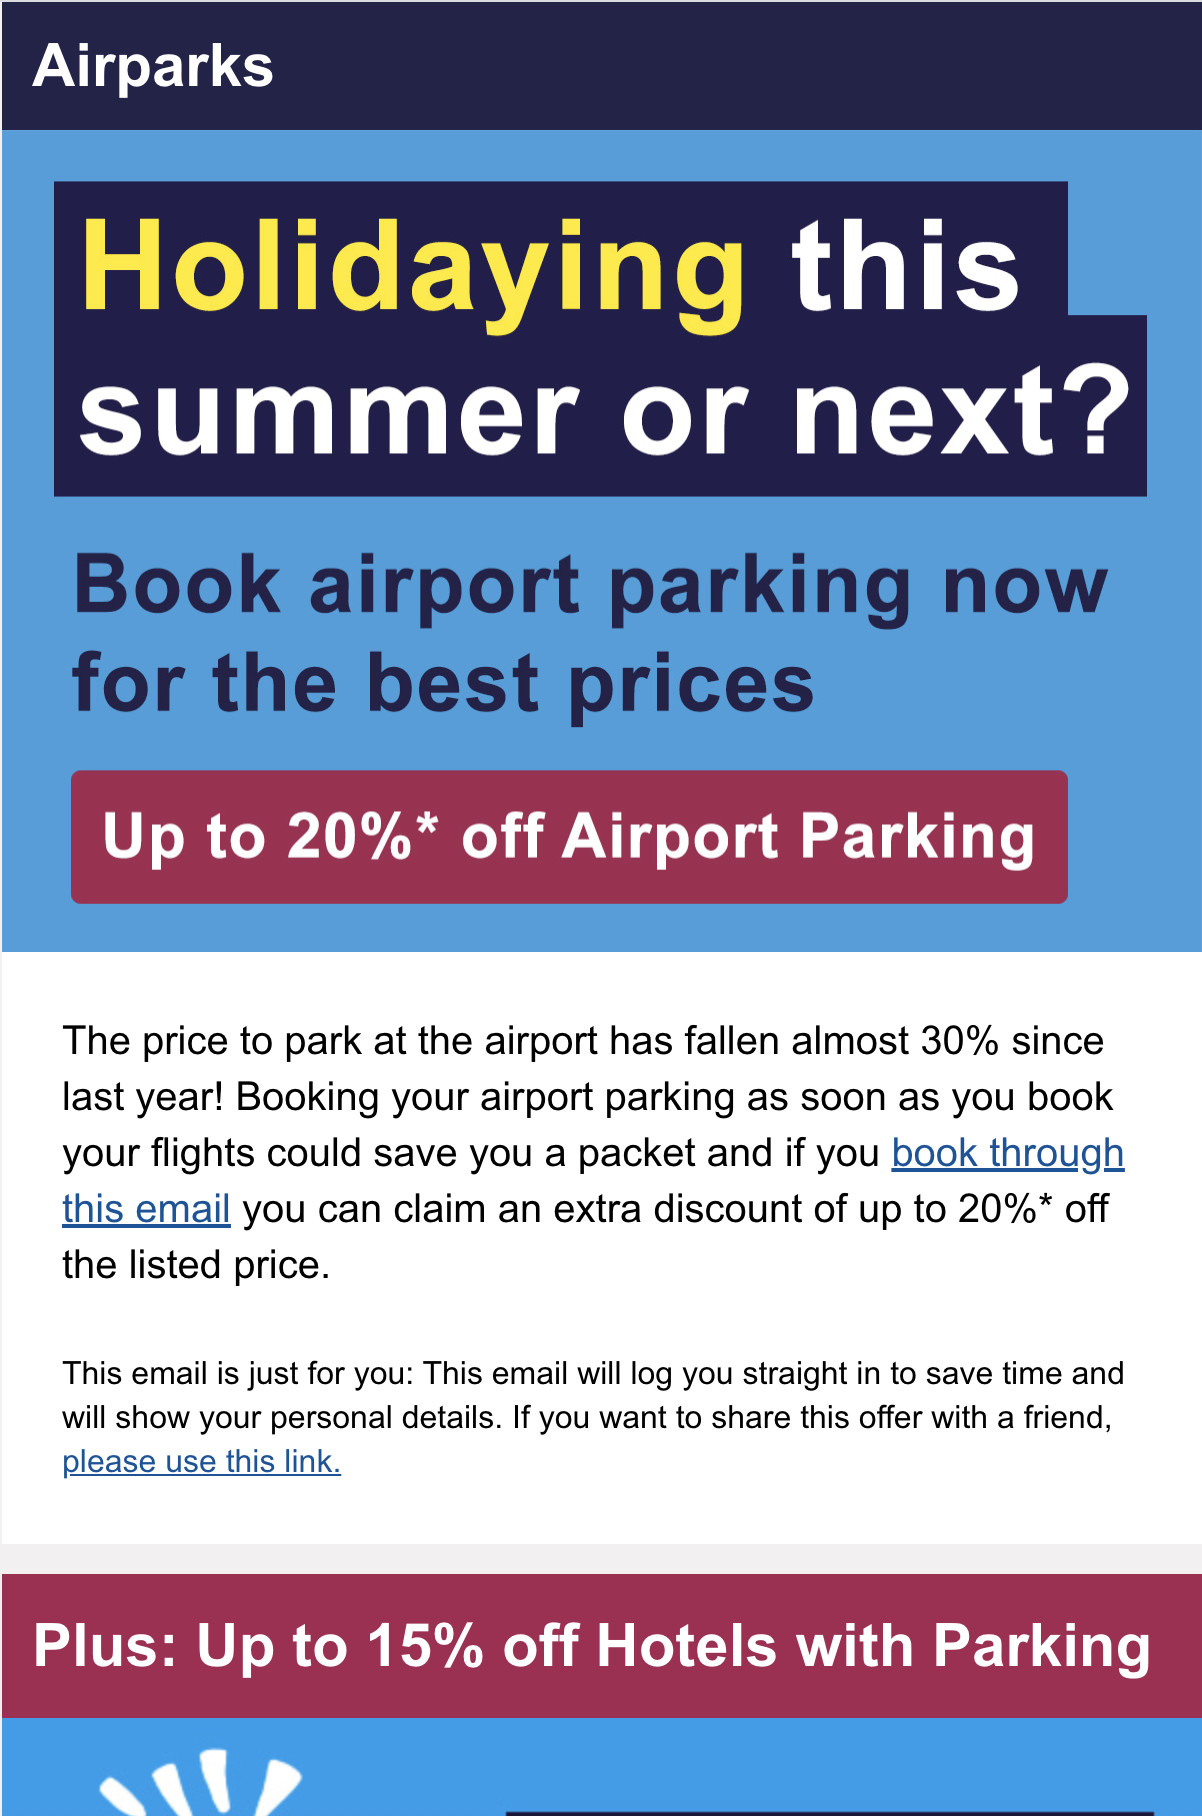 Airparks Luton Newsletter